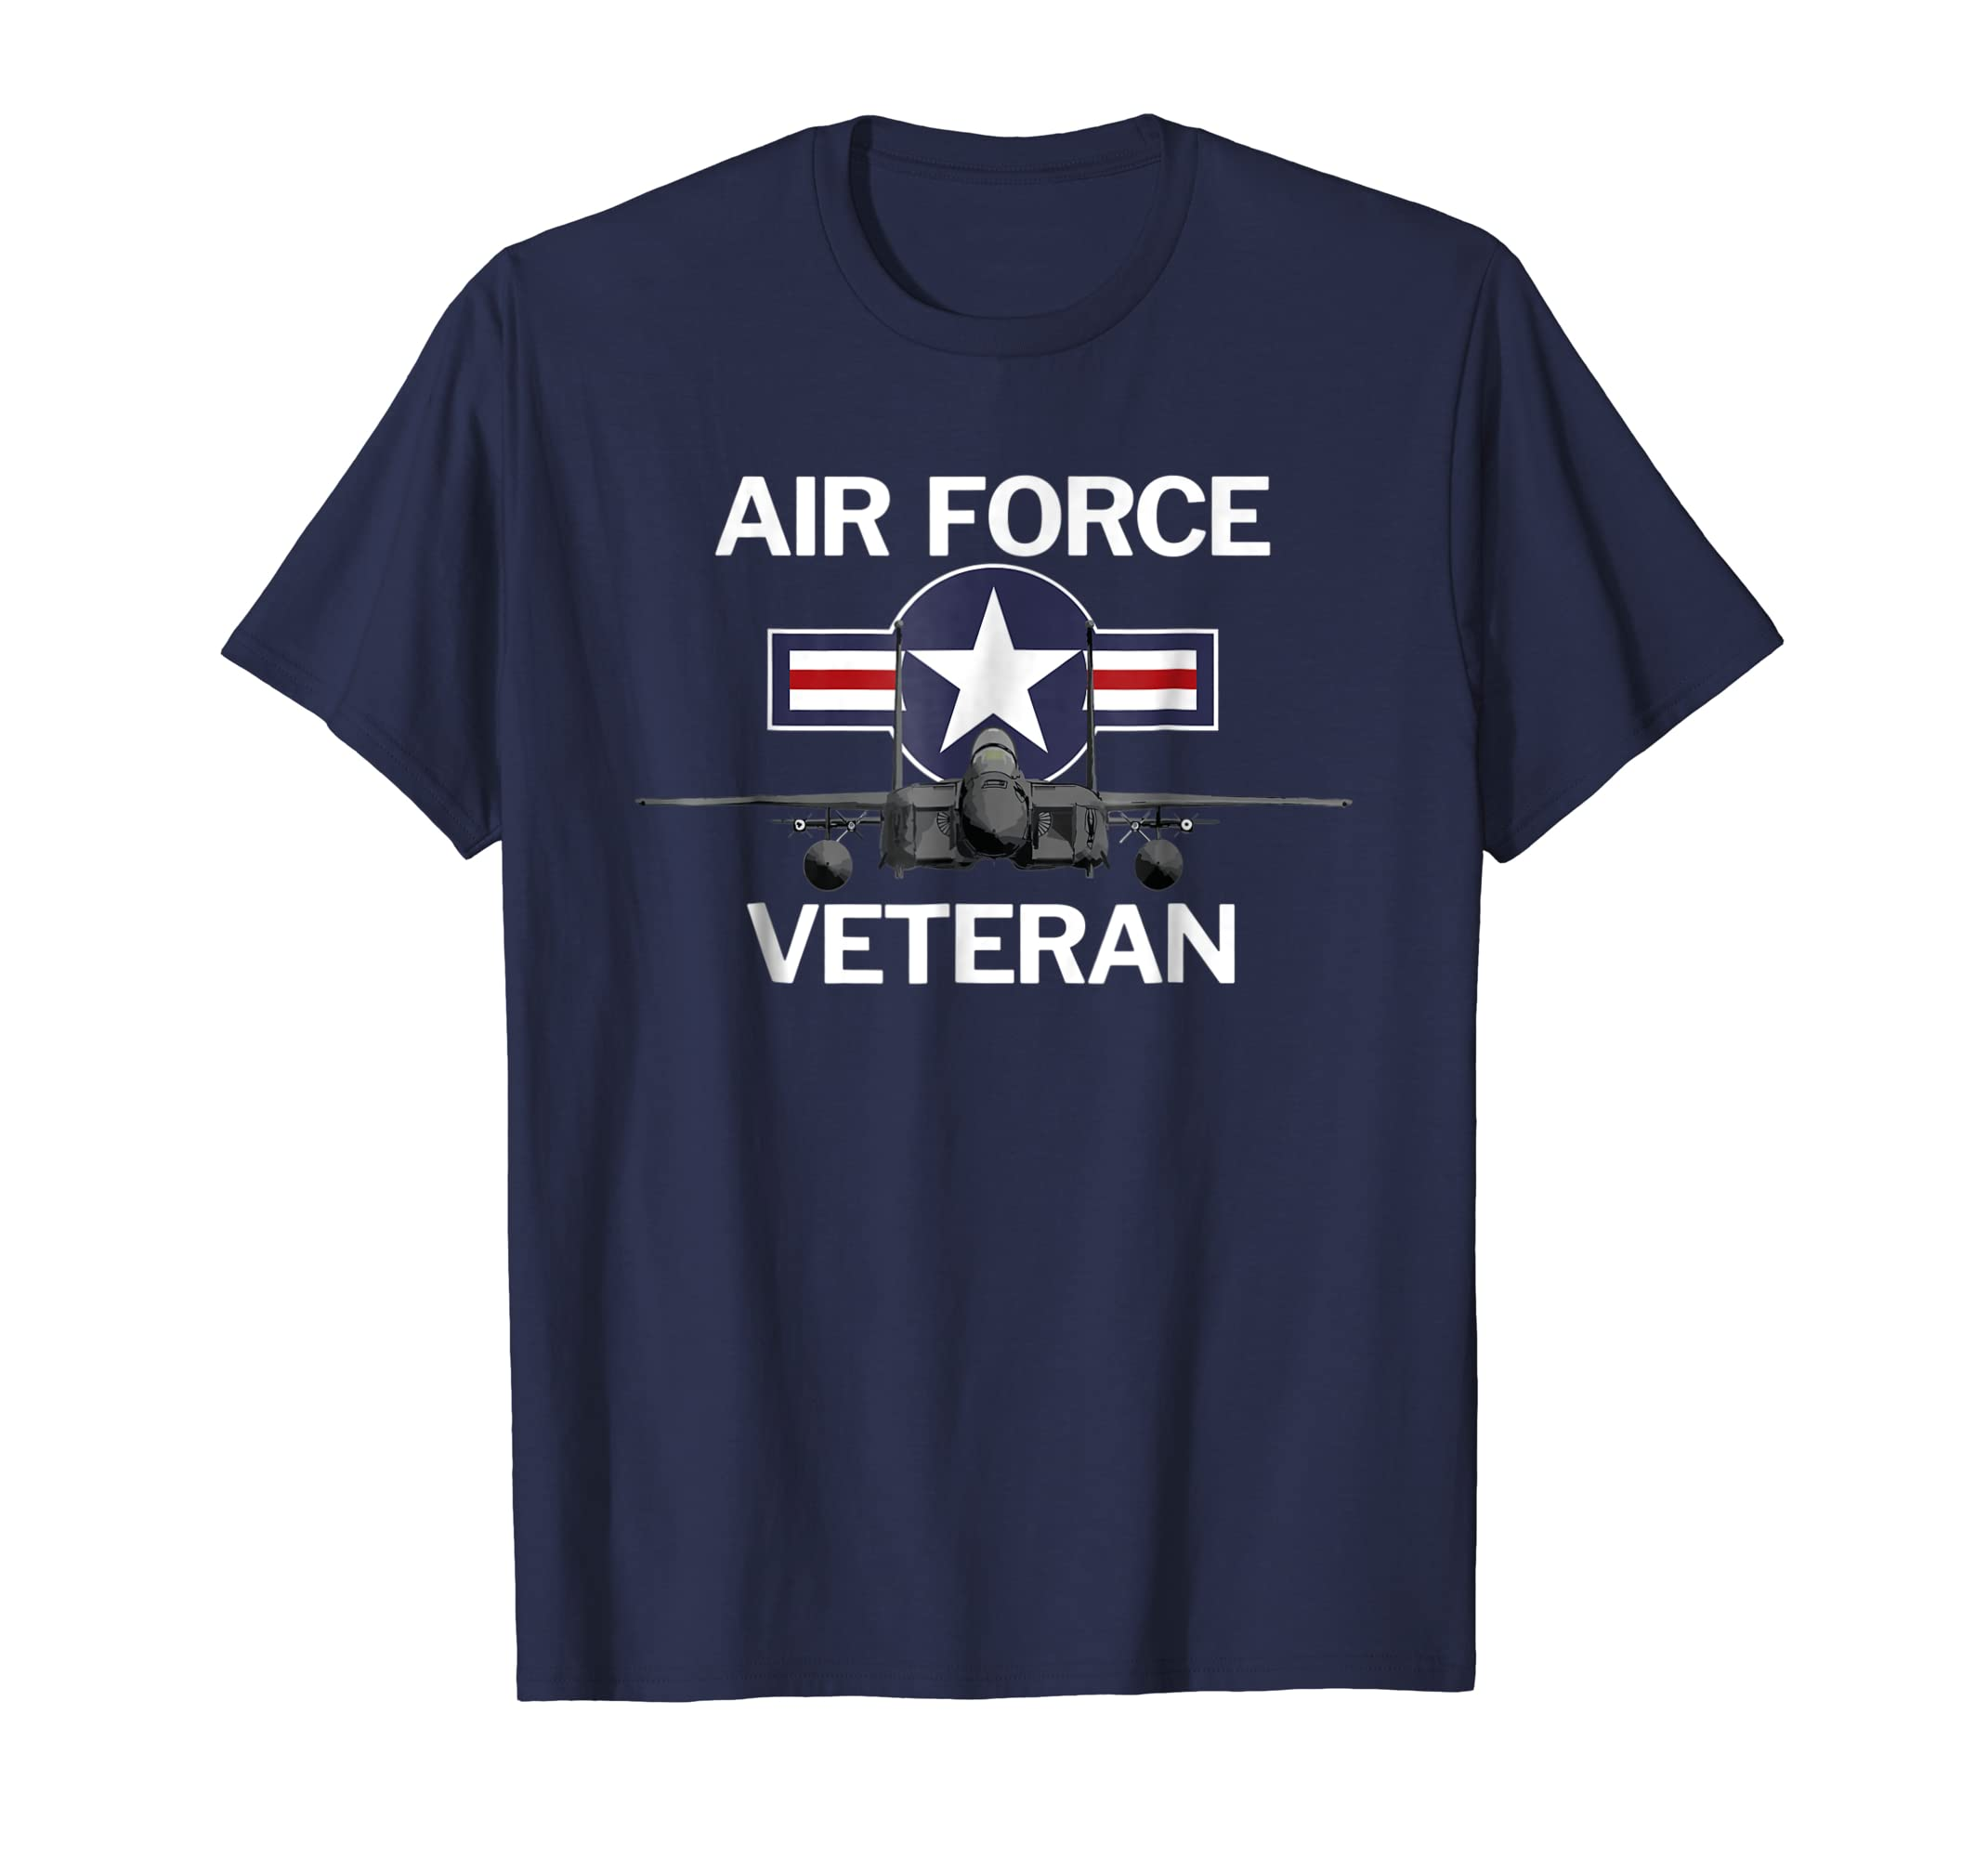 Air Force Veteran T Shirt with Vintage Roundel and F15 Jet-azvn